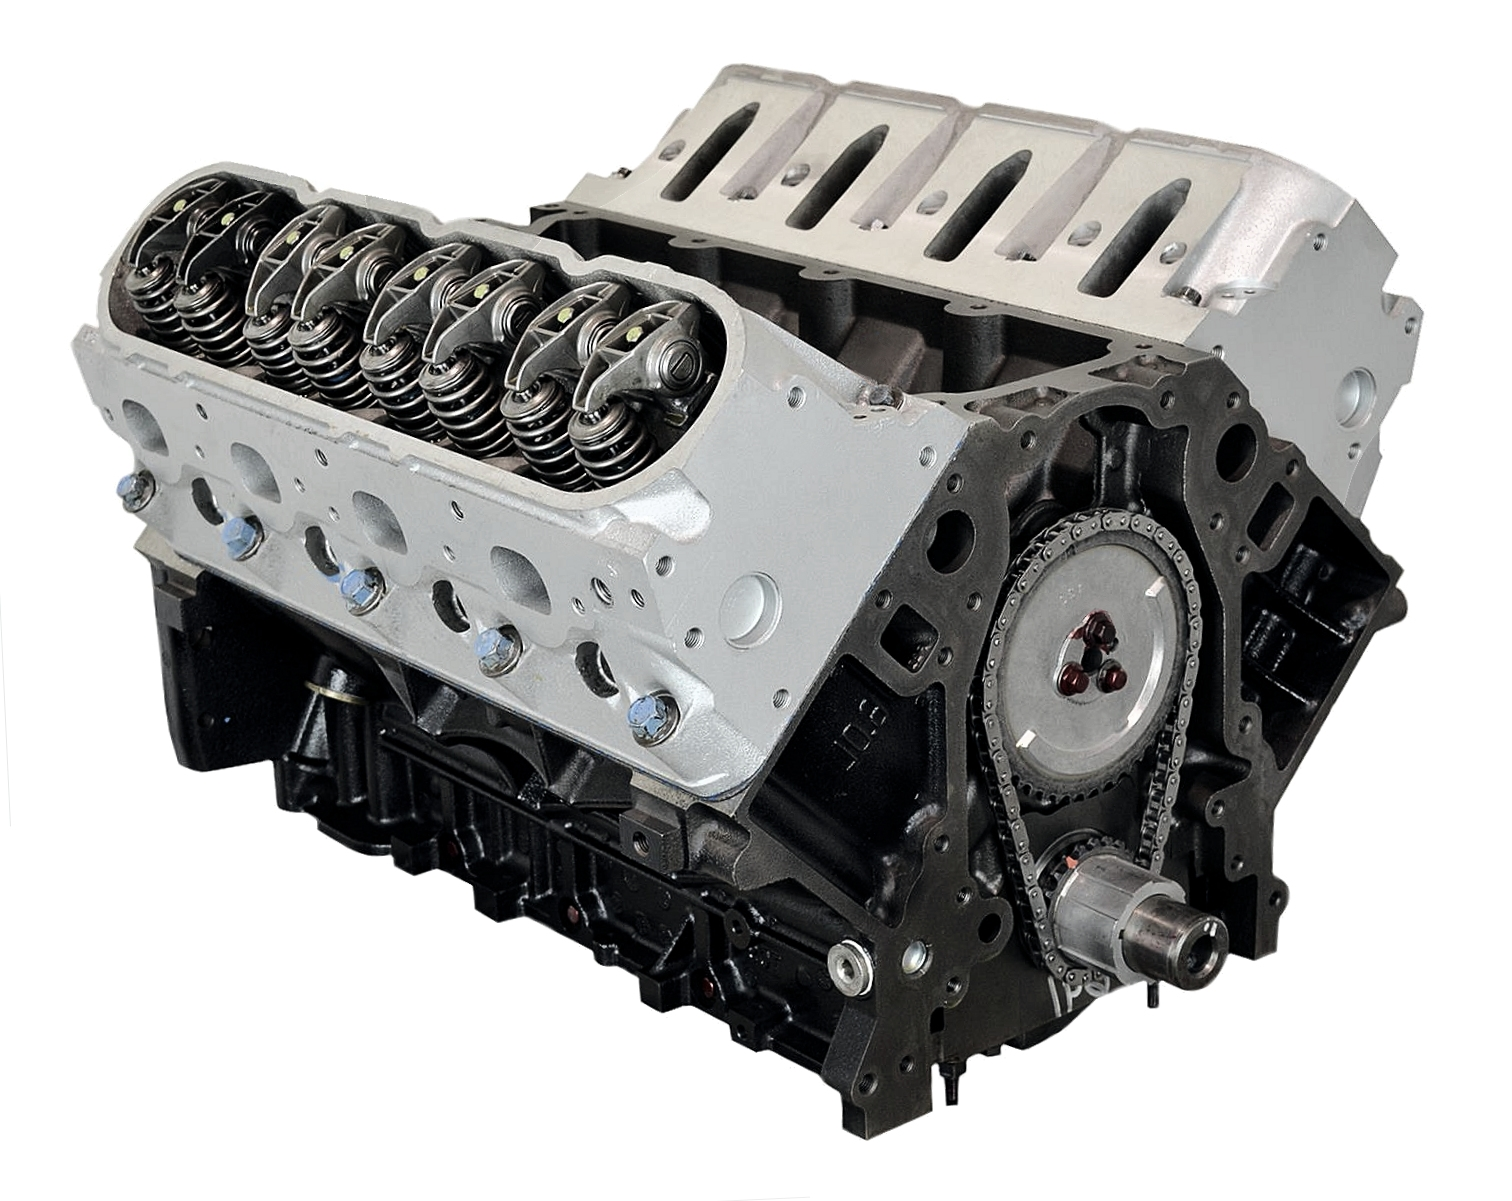 Chevrolet Avalanche 1500 - 5.3 LM7 Engine - 2002-2006 (Vin Code: T)